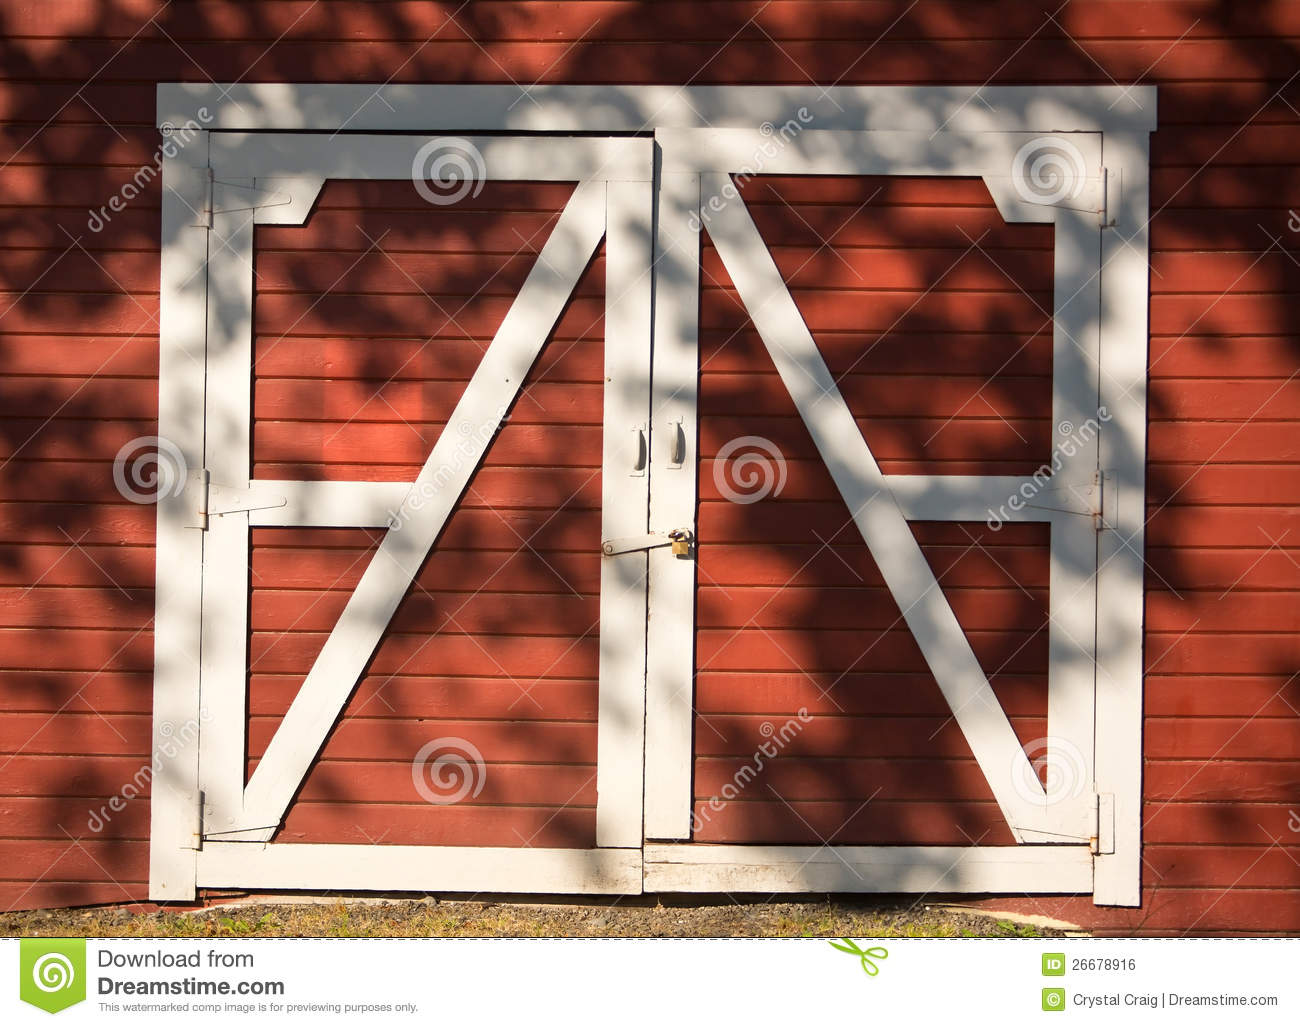 Red And White Barn Doors Royalty Free Stock Image - Image: 26678916